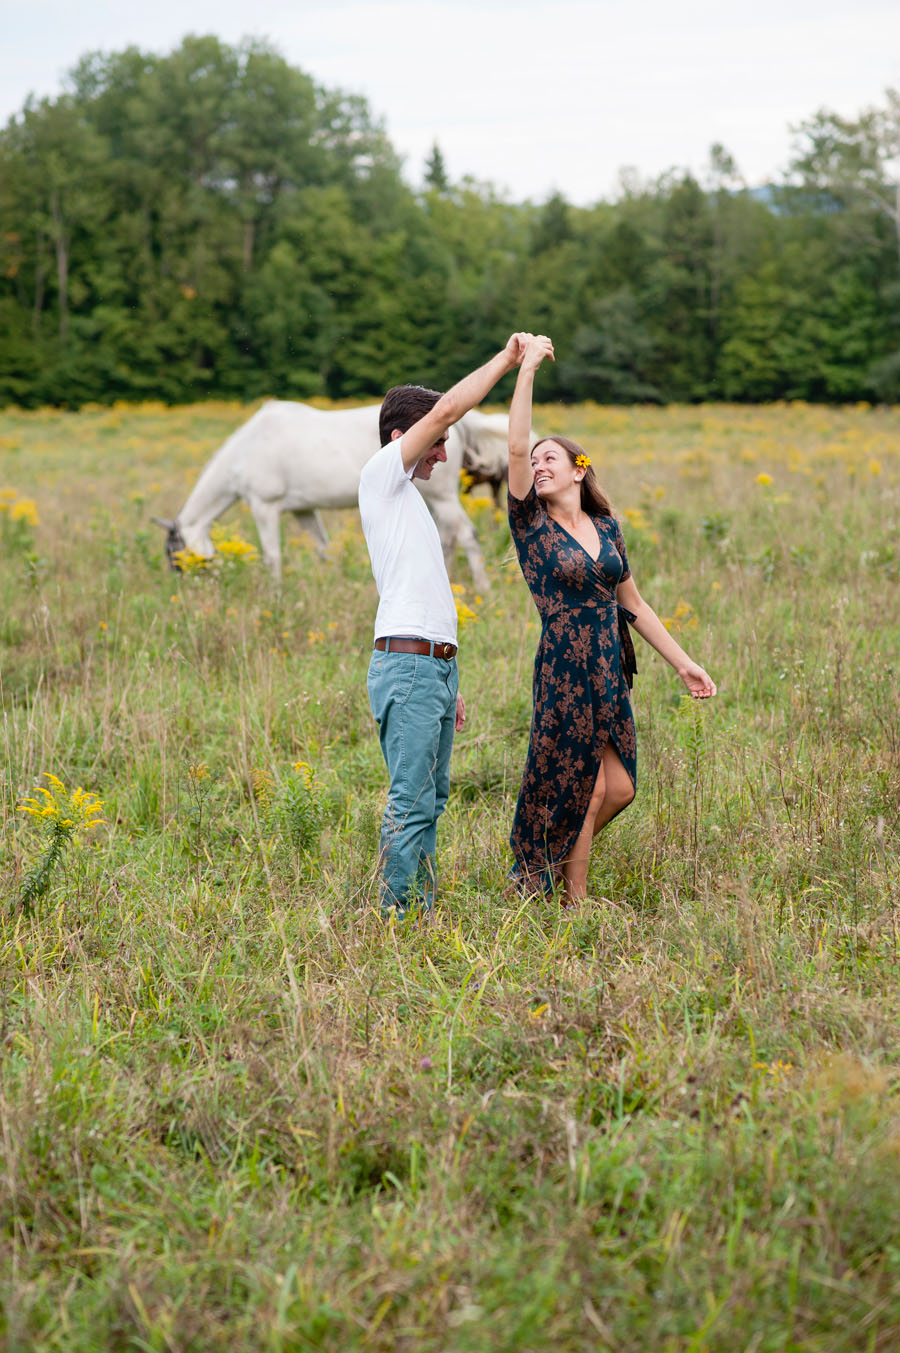 featured-photographer-black-lamb-photography-ottawa-canada-6